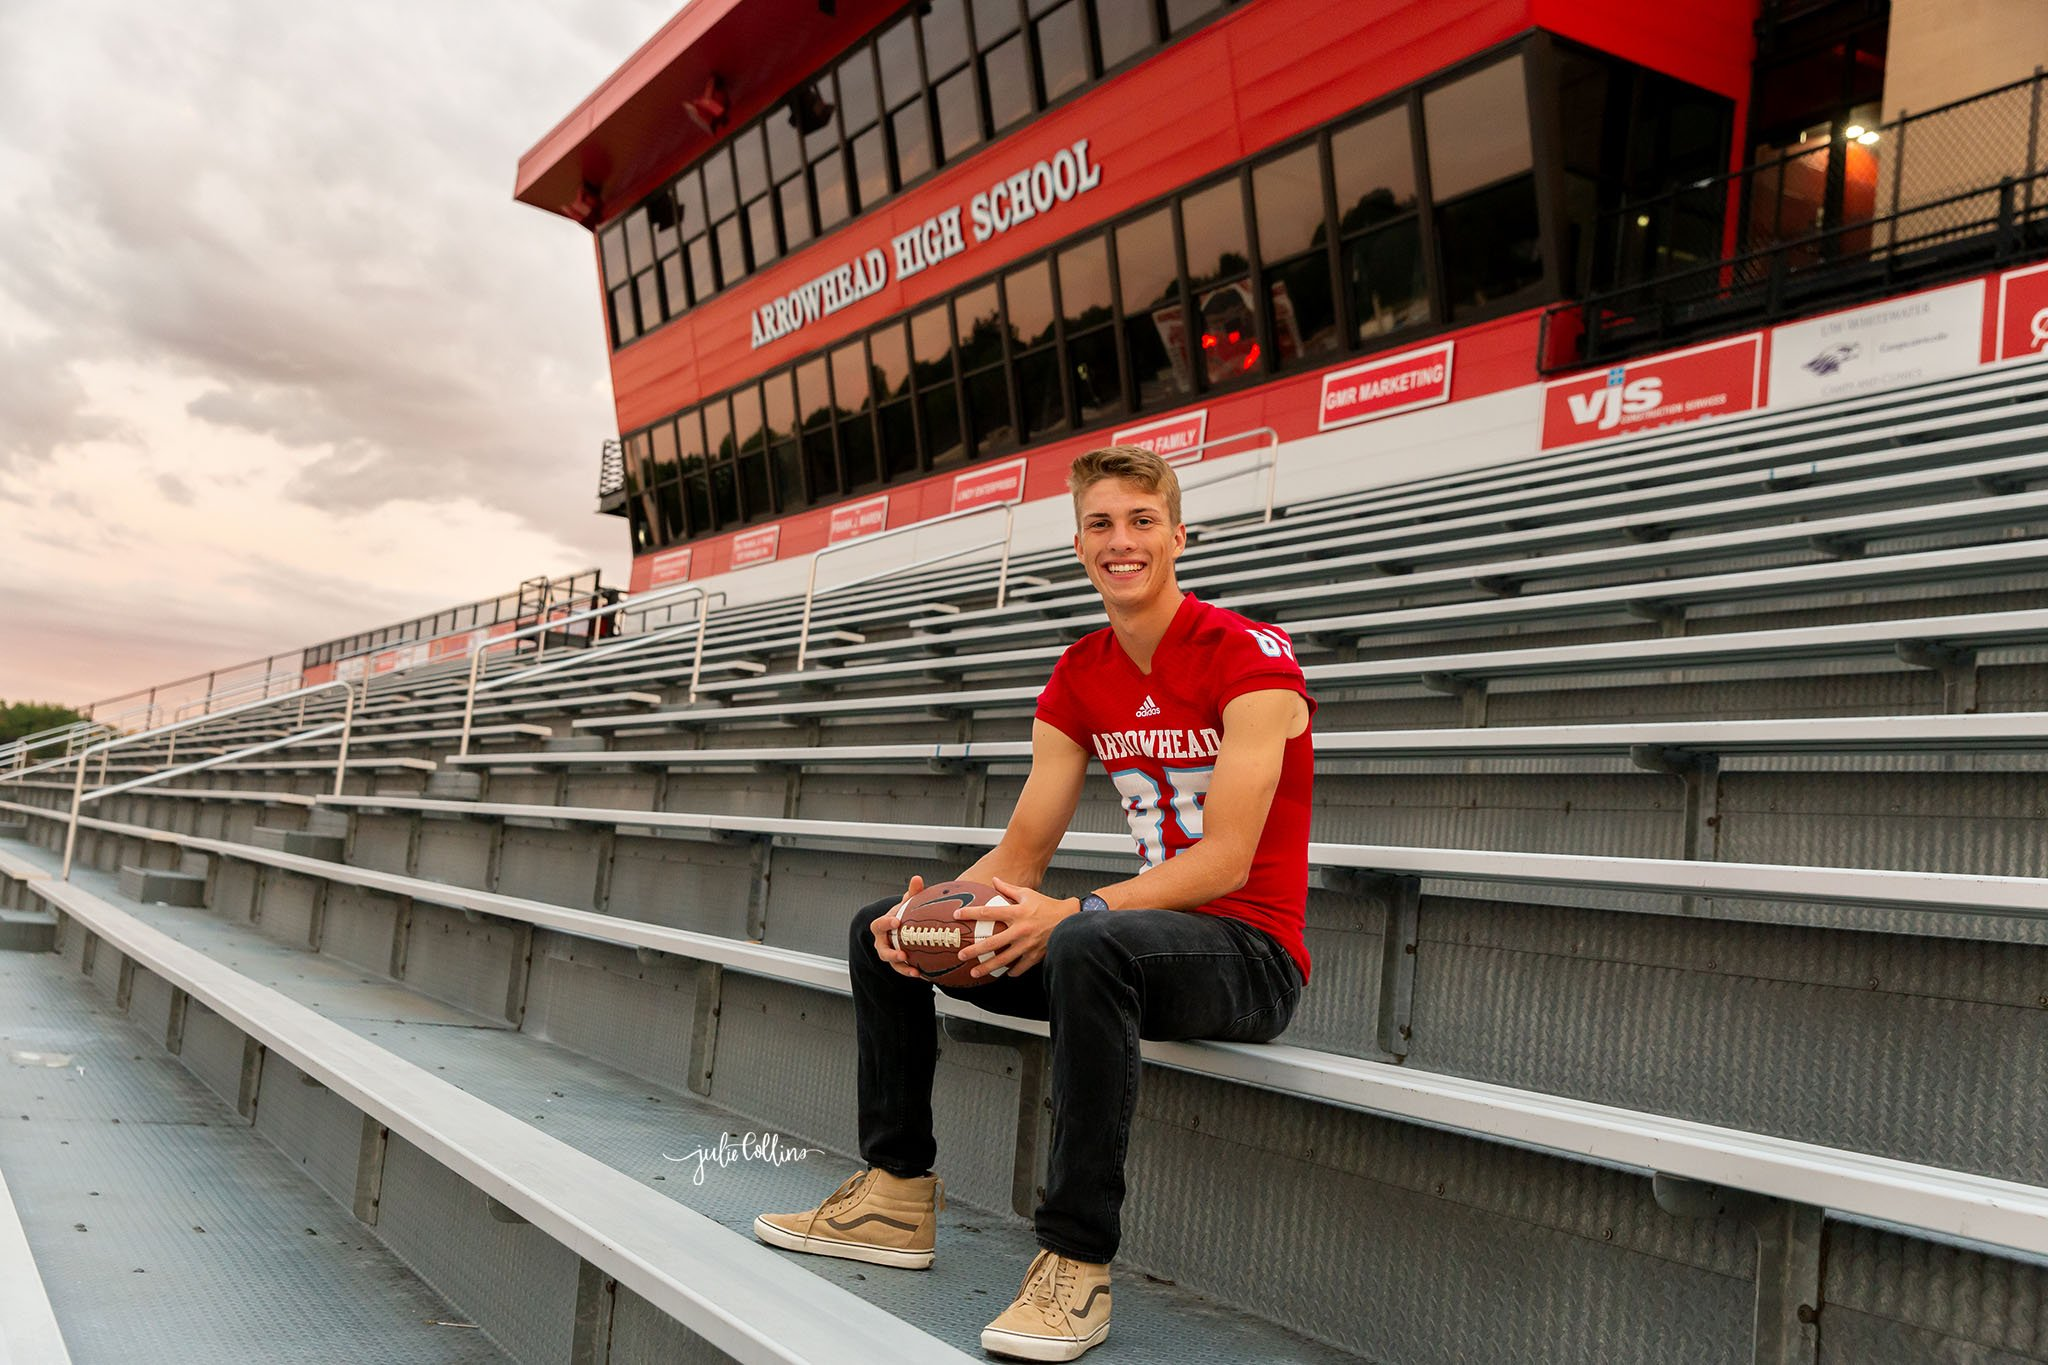 High school senior boy posing for pictures in front of Hartland Arrowhead football stadium in Wisconsin